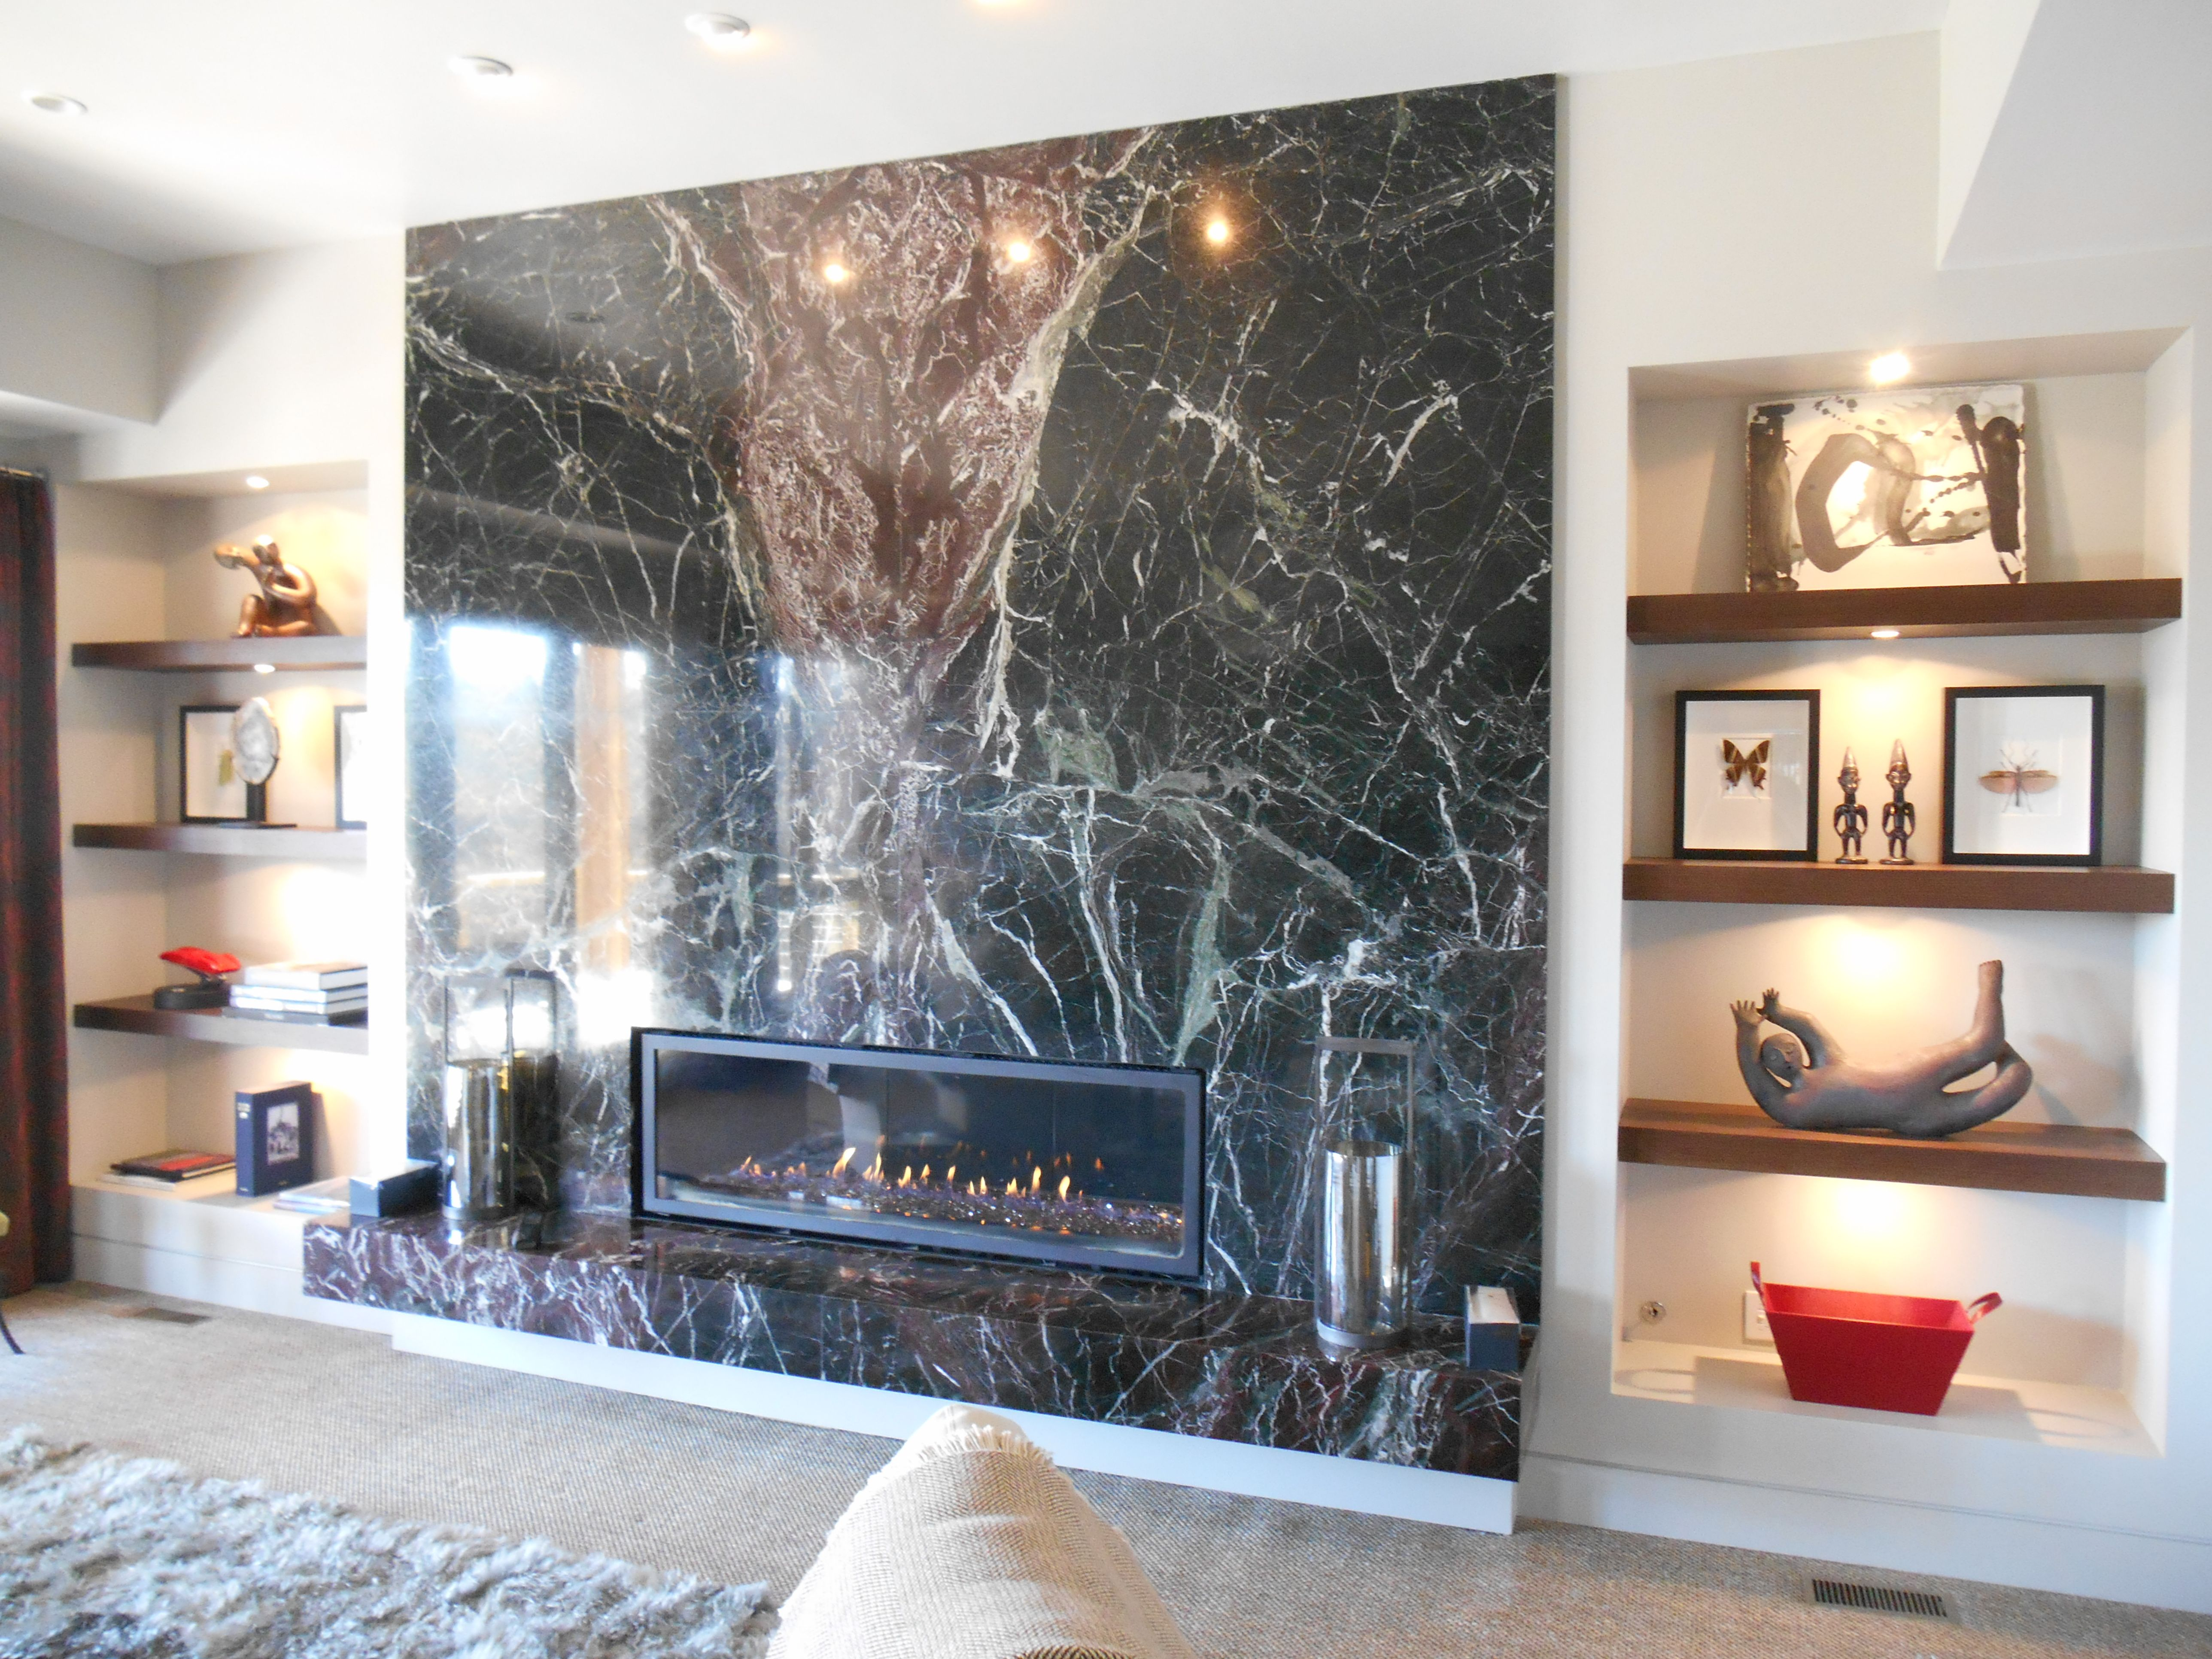 This Incredible Linear Fireplace Is Highlighted With A